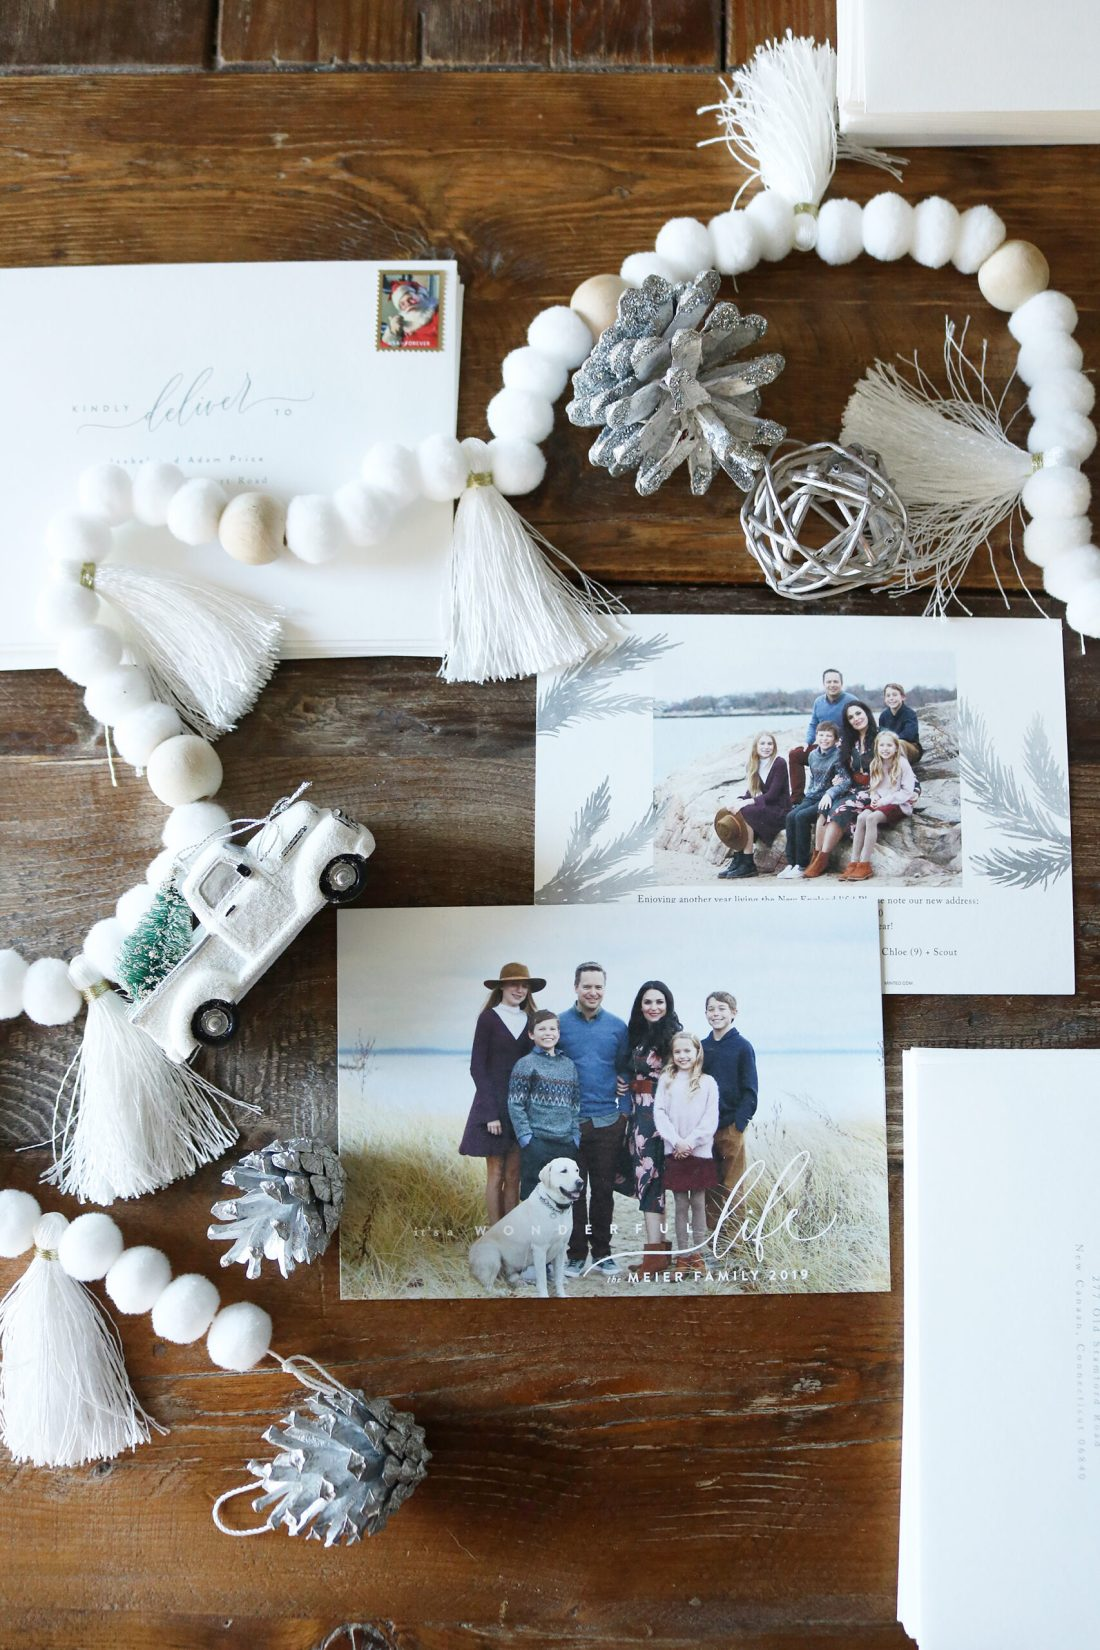 Minted Christmas Cards has the best print job, paper thickness and card designs.  We love the discounts available and the quick shipping.  Our Holiday cards come out great every year!  Darling Darleen | Top CT Lifestyle Blogger #darlingdarleen #minted #holidaycards #christmascards